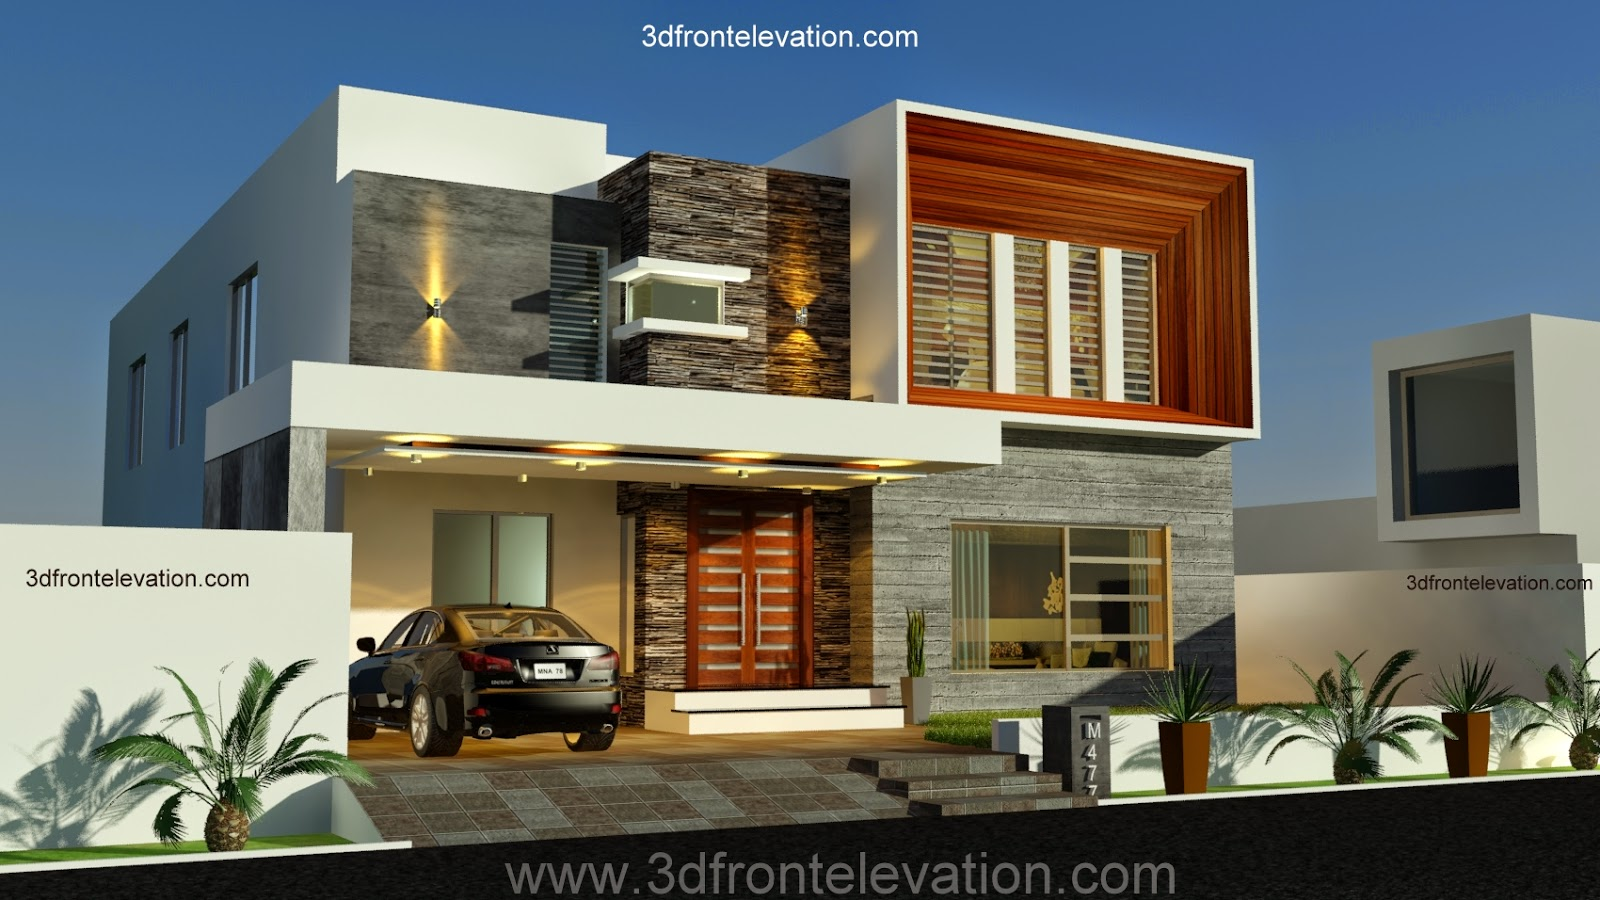 Architectural Design House Plans In Pakistan Ideasidea